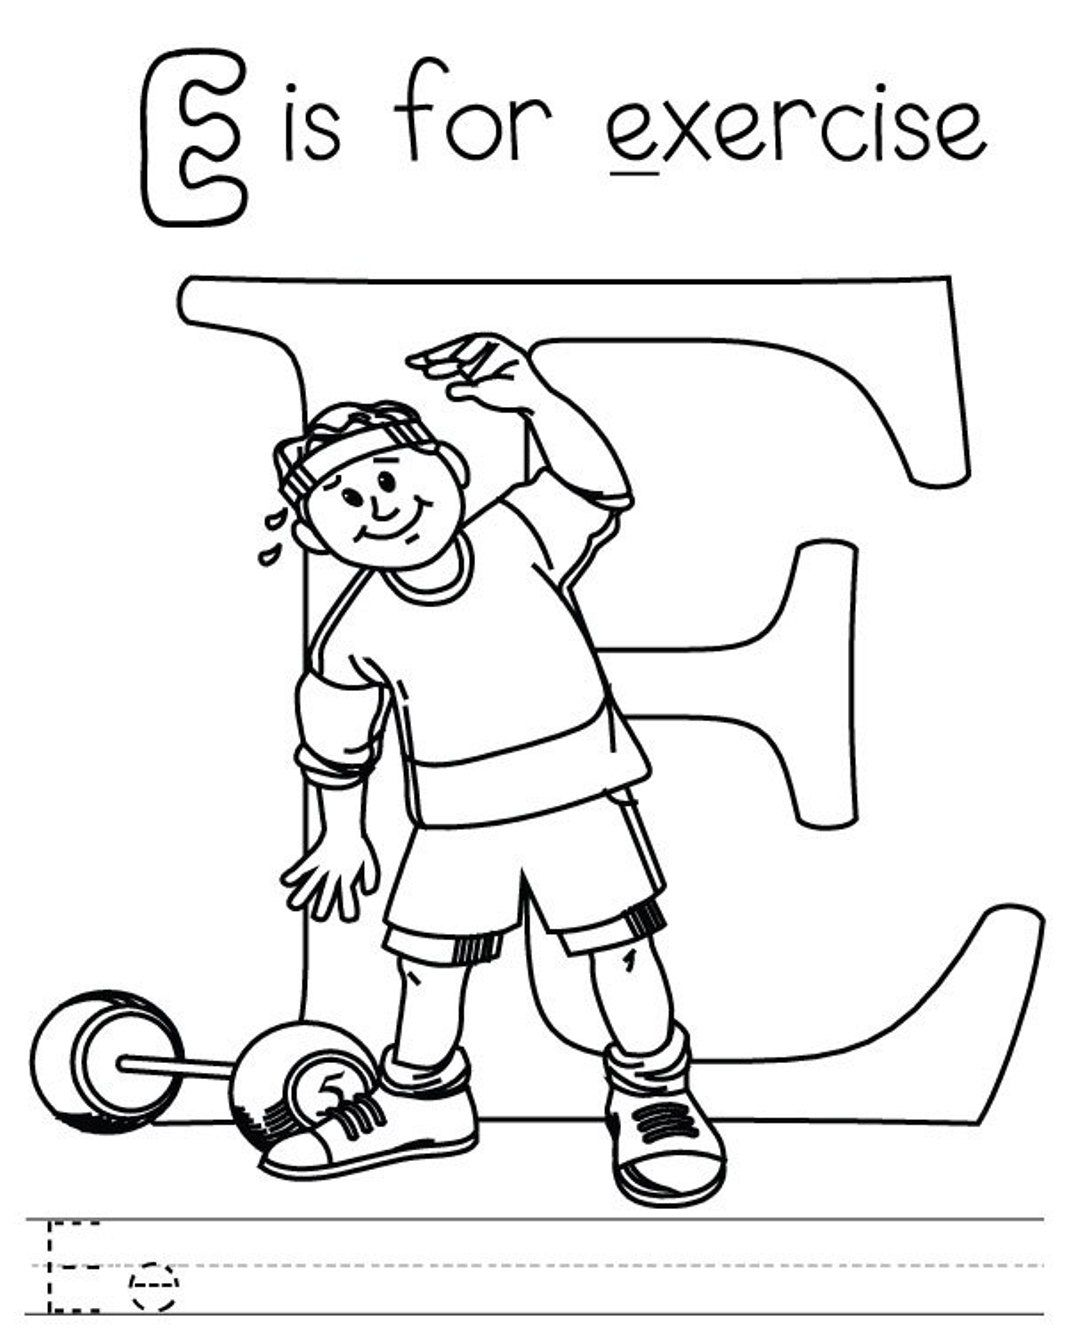 Fitness Coloring Pages Alphabet Coloring Pages Coloring Pages For Kids Alphabet Coloring